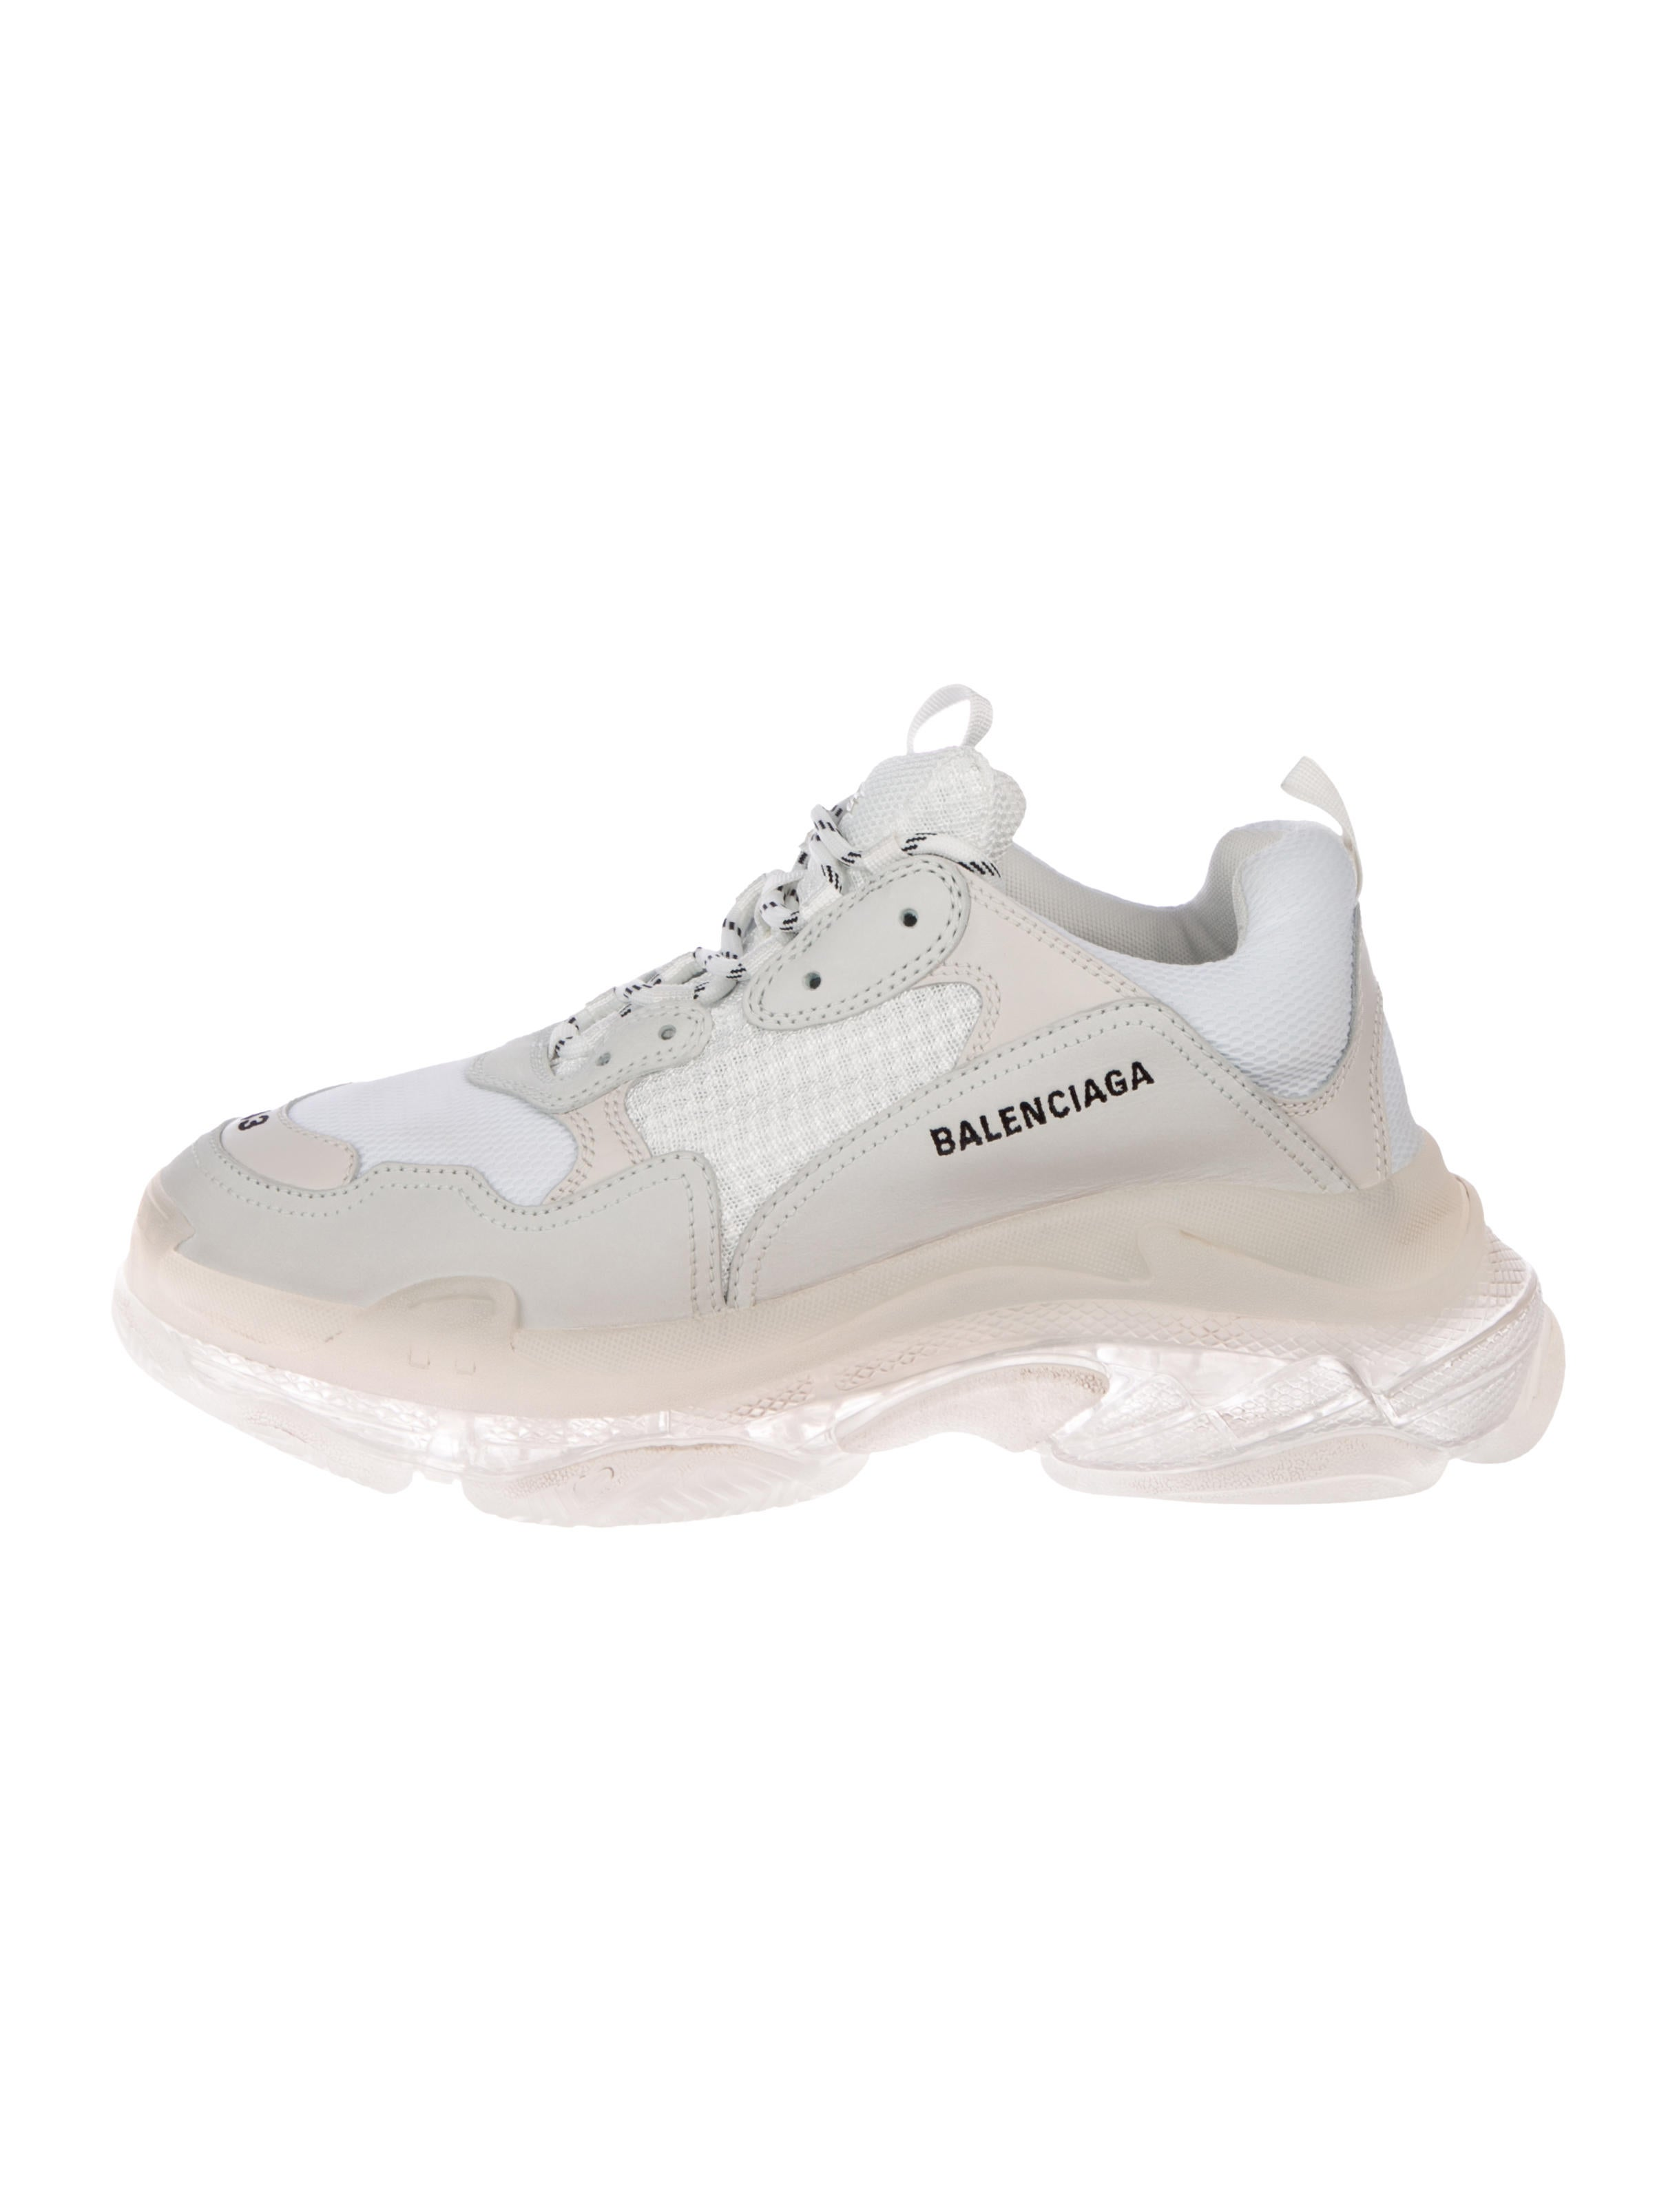 Balenciaga Leather Grey Triple S Sneakers in Gray for Men